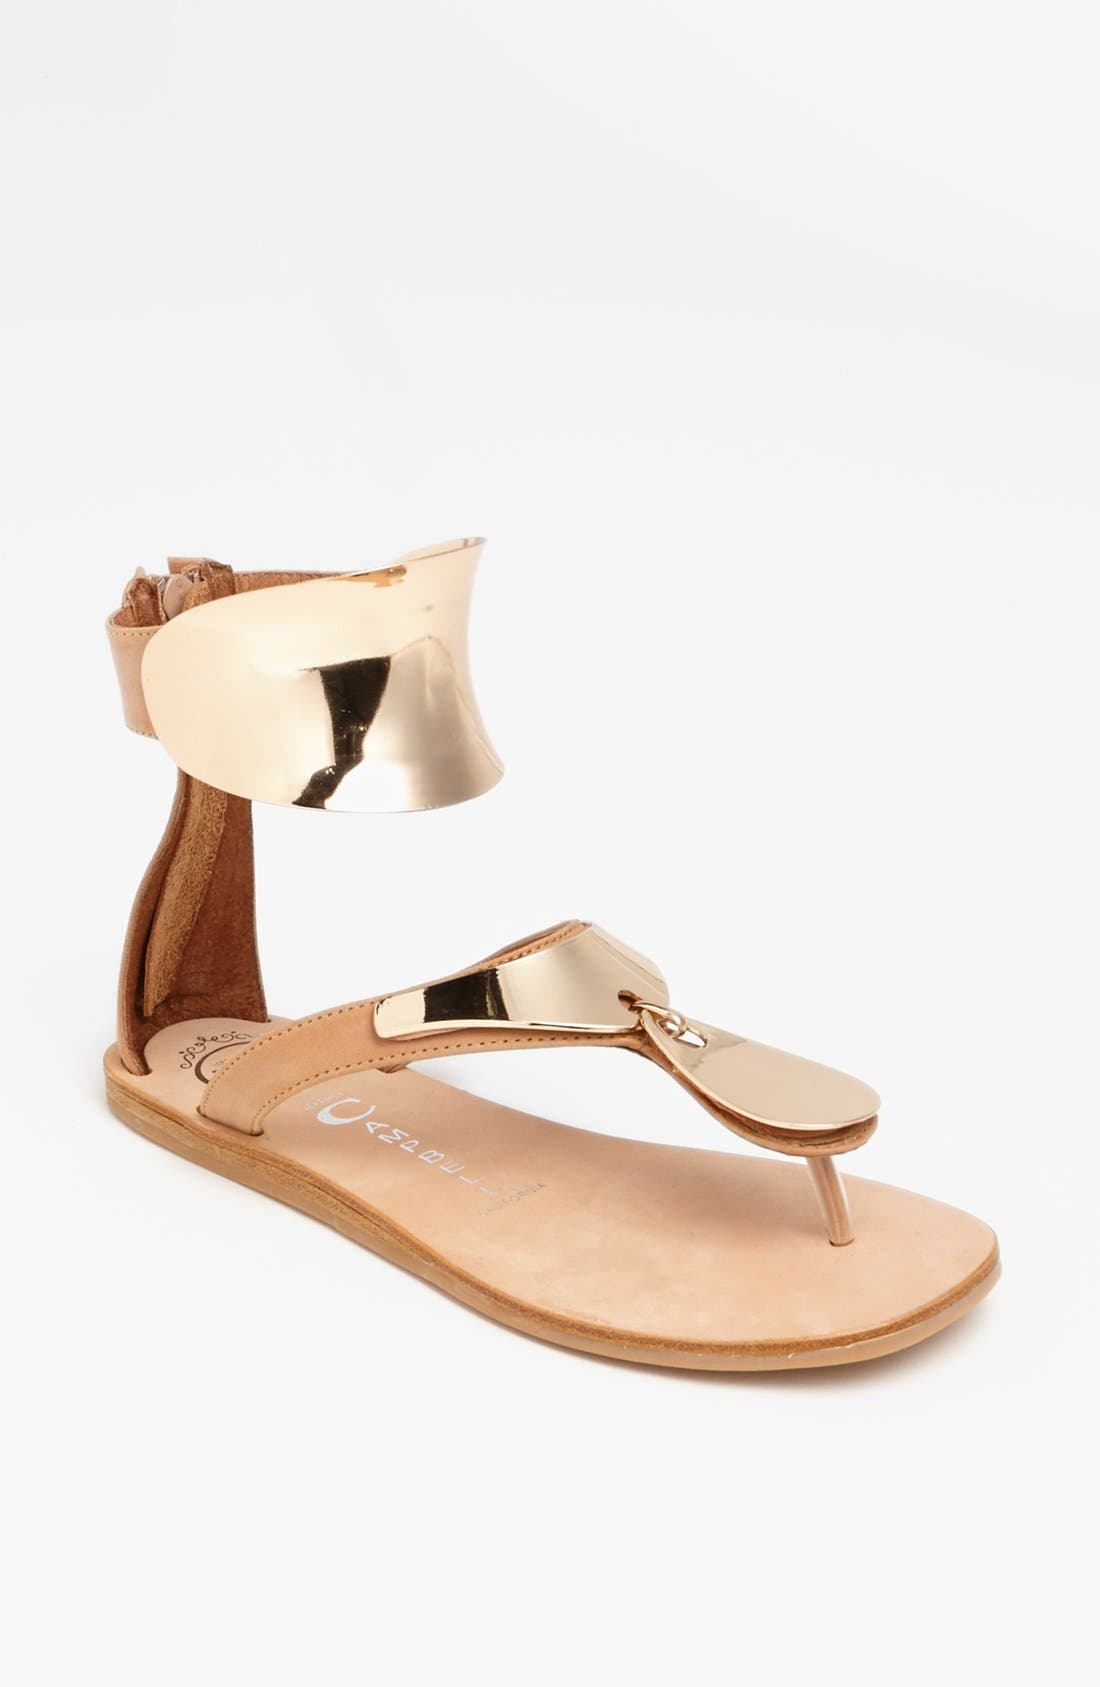 Alternate Image 1 Selected - Jeffrey Campbell 'Congo' Sandal